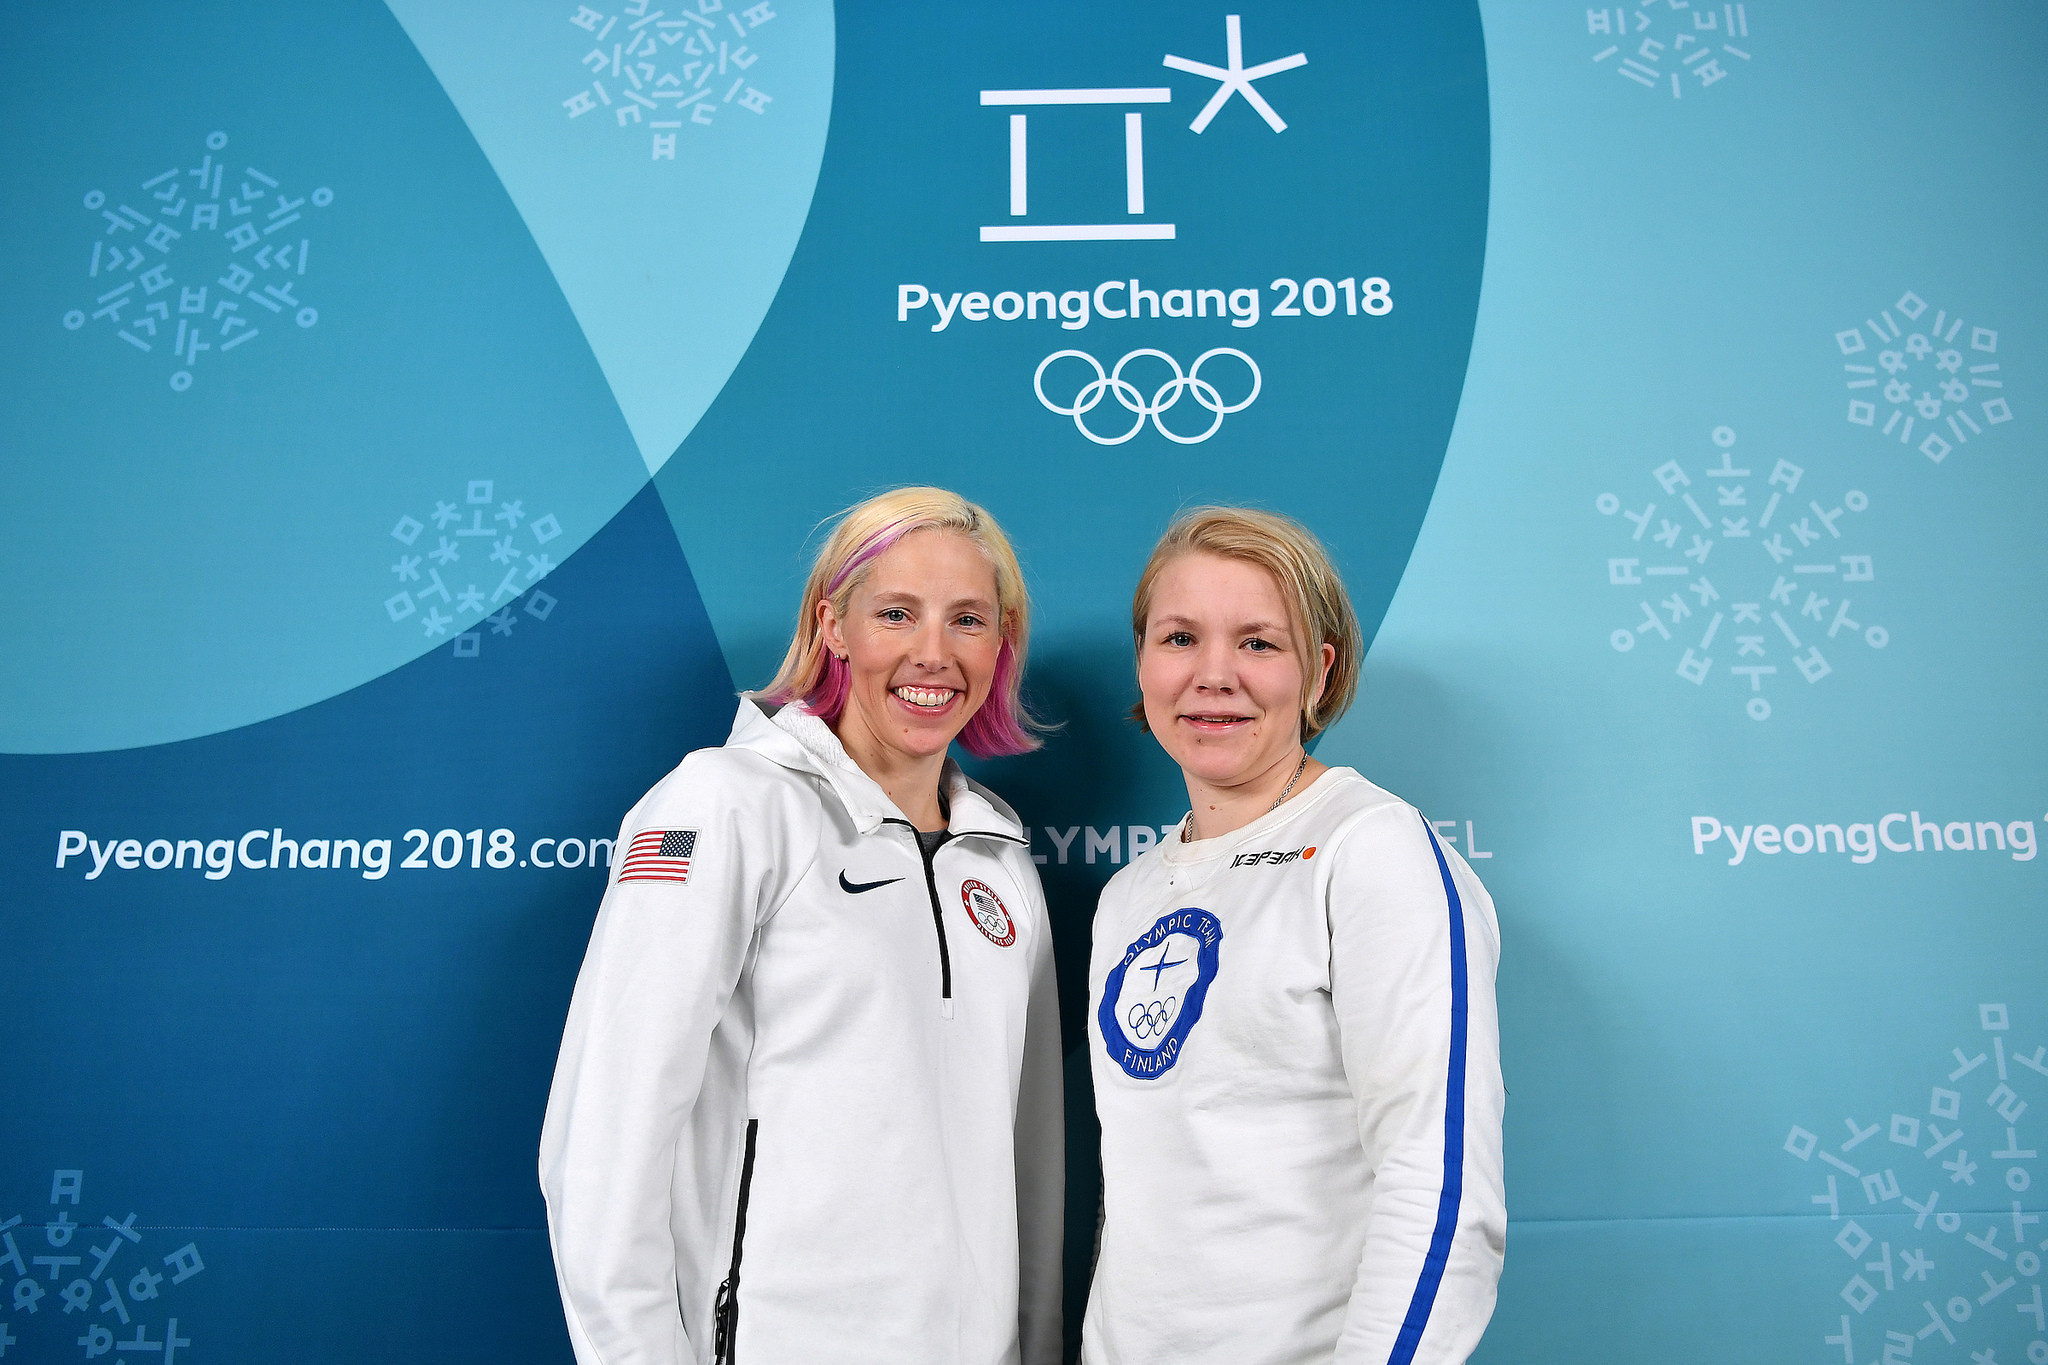 Emma Terho and Kikkan Randall were also sworn in as IOC members following the Athletes' Commission election ©IOC